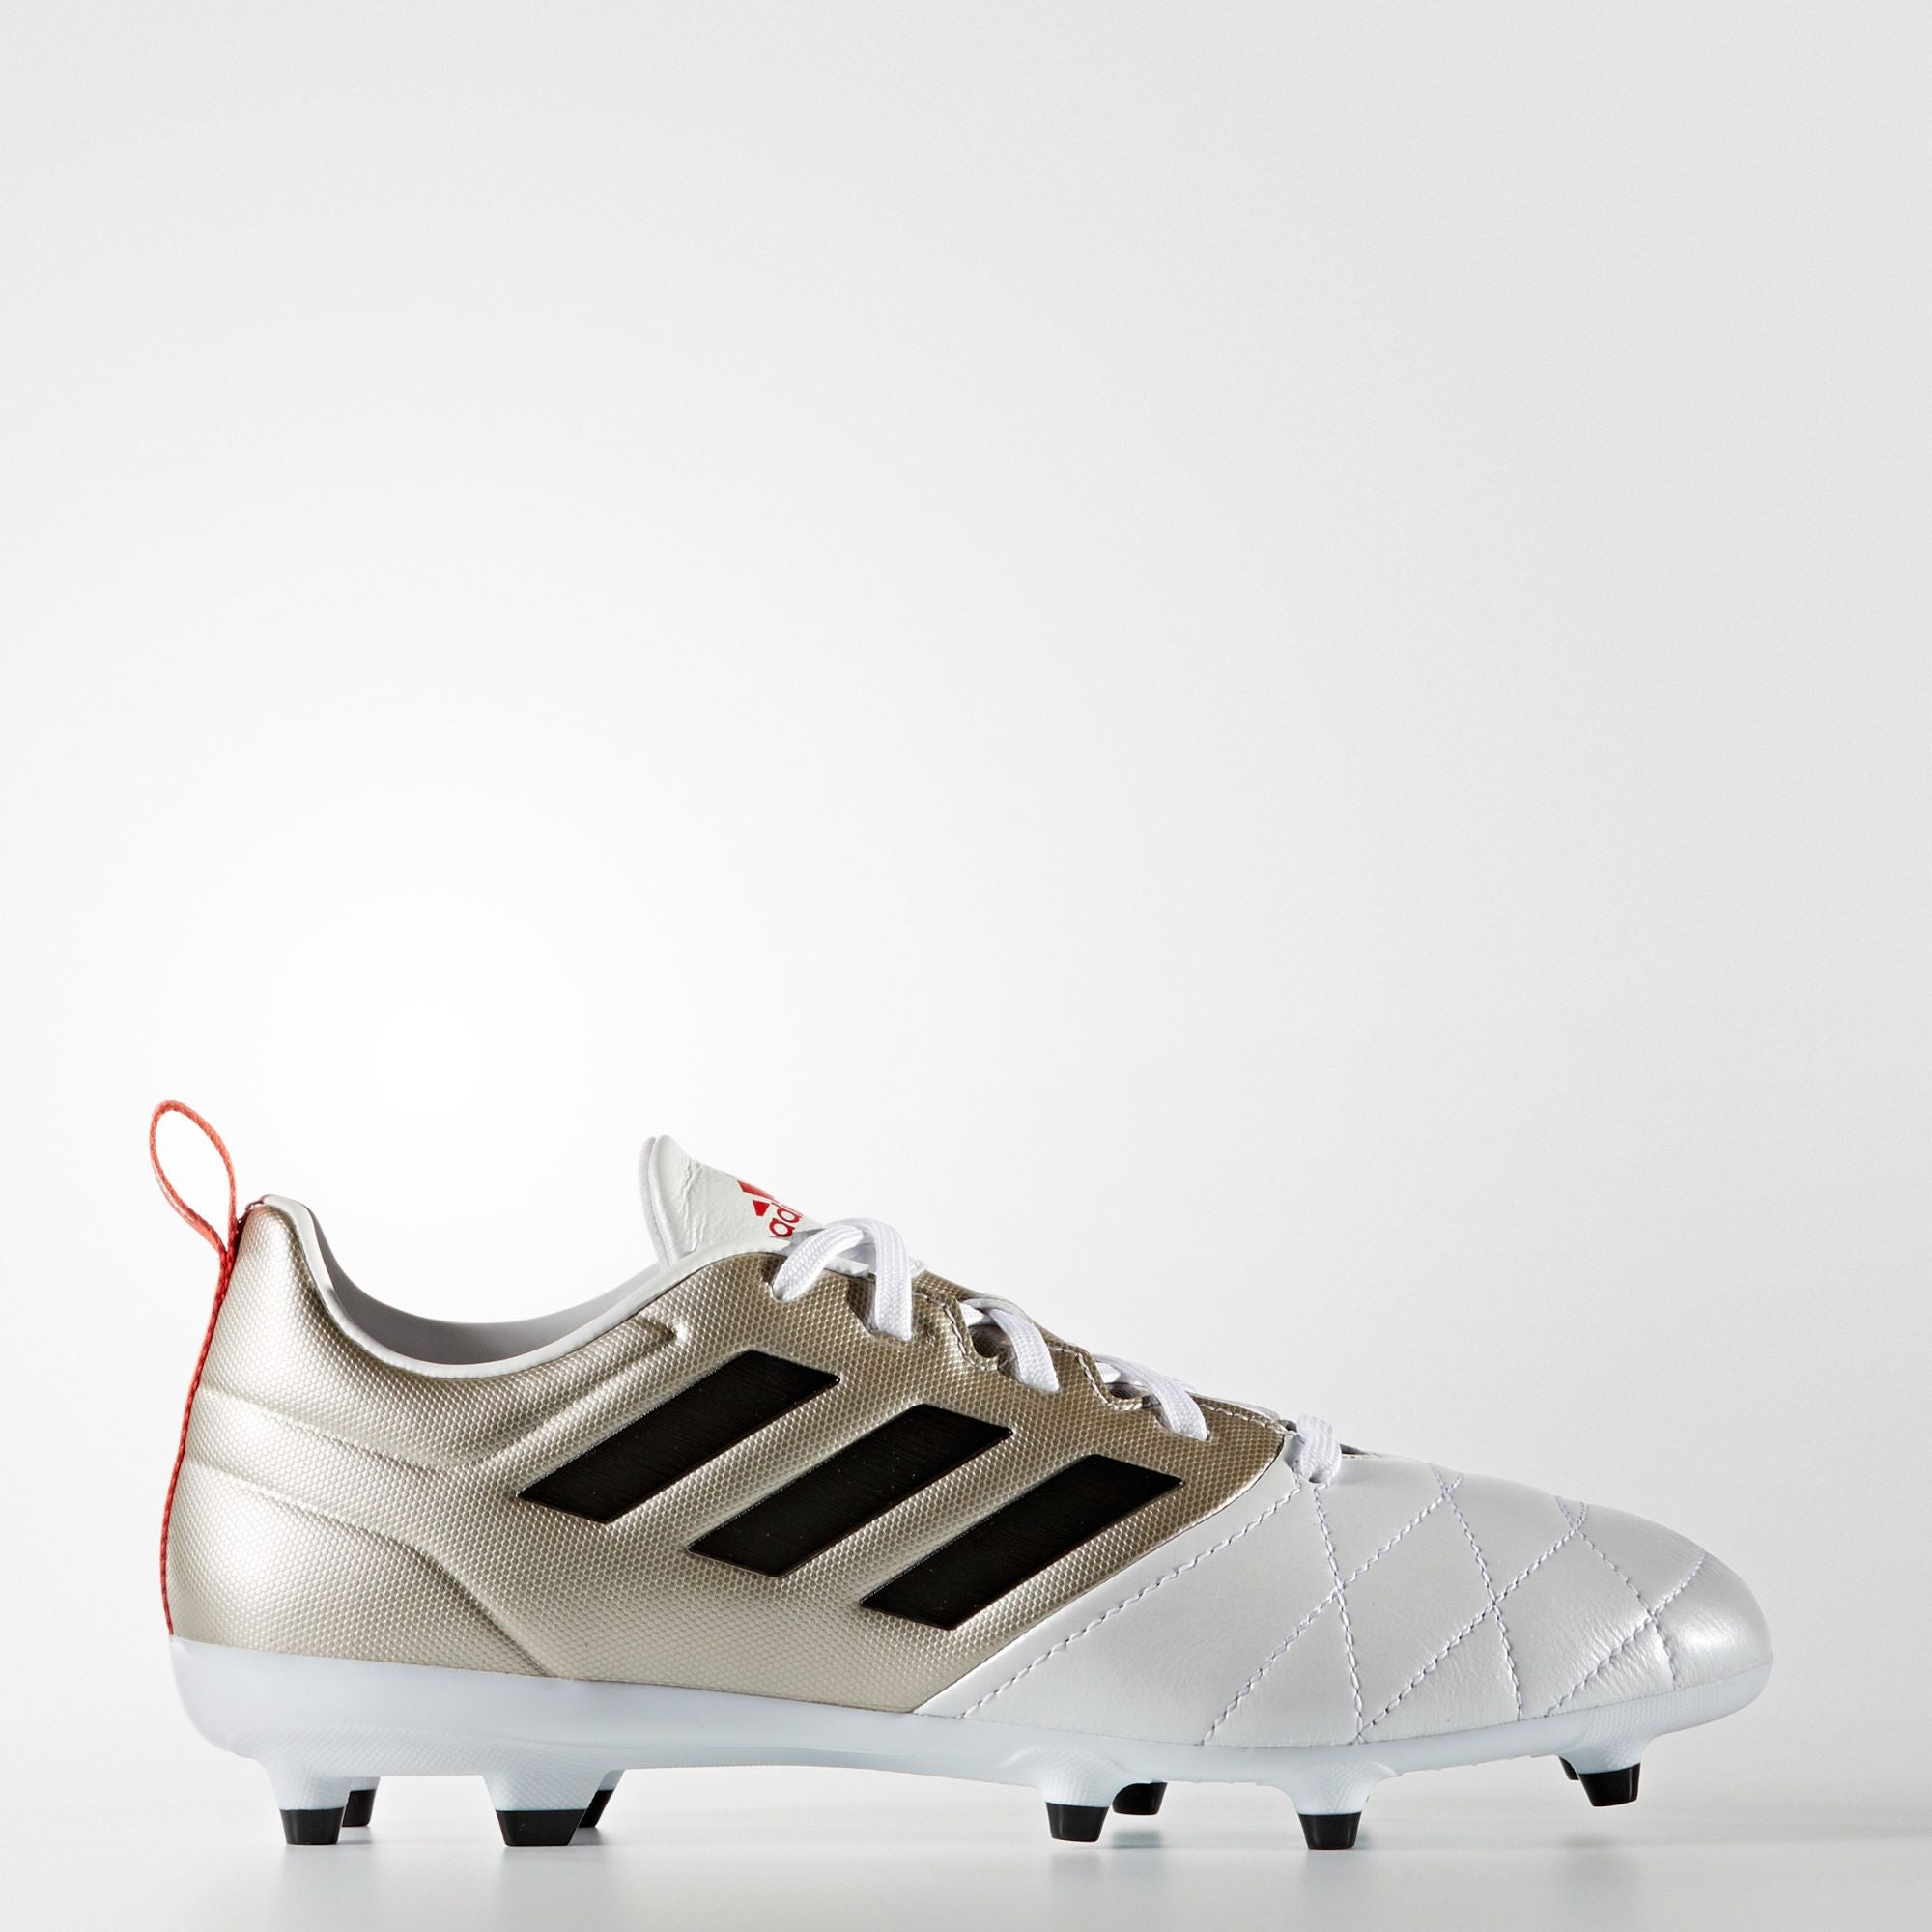 check out 99347 3886e ... official store adidas adidas ace 17.3 firm ground womens football boots  la liga soccer cbcd1 1b672